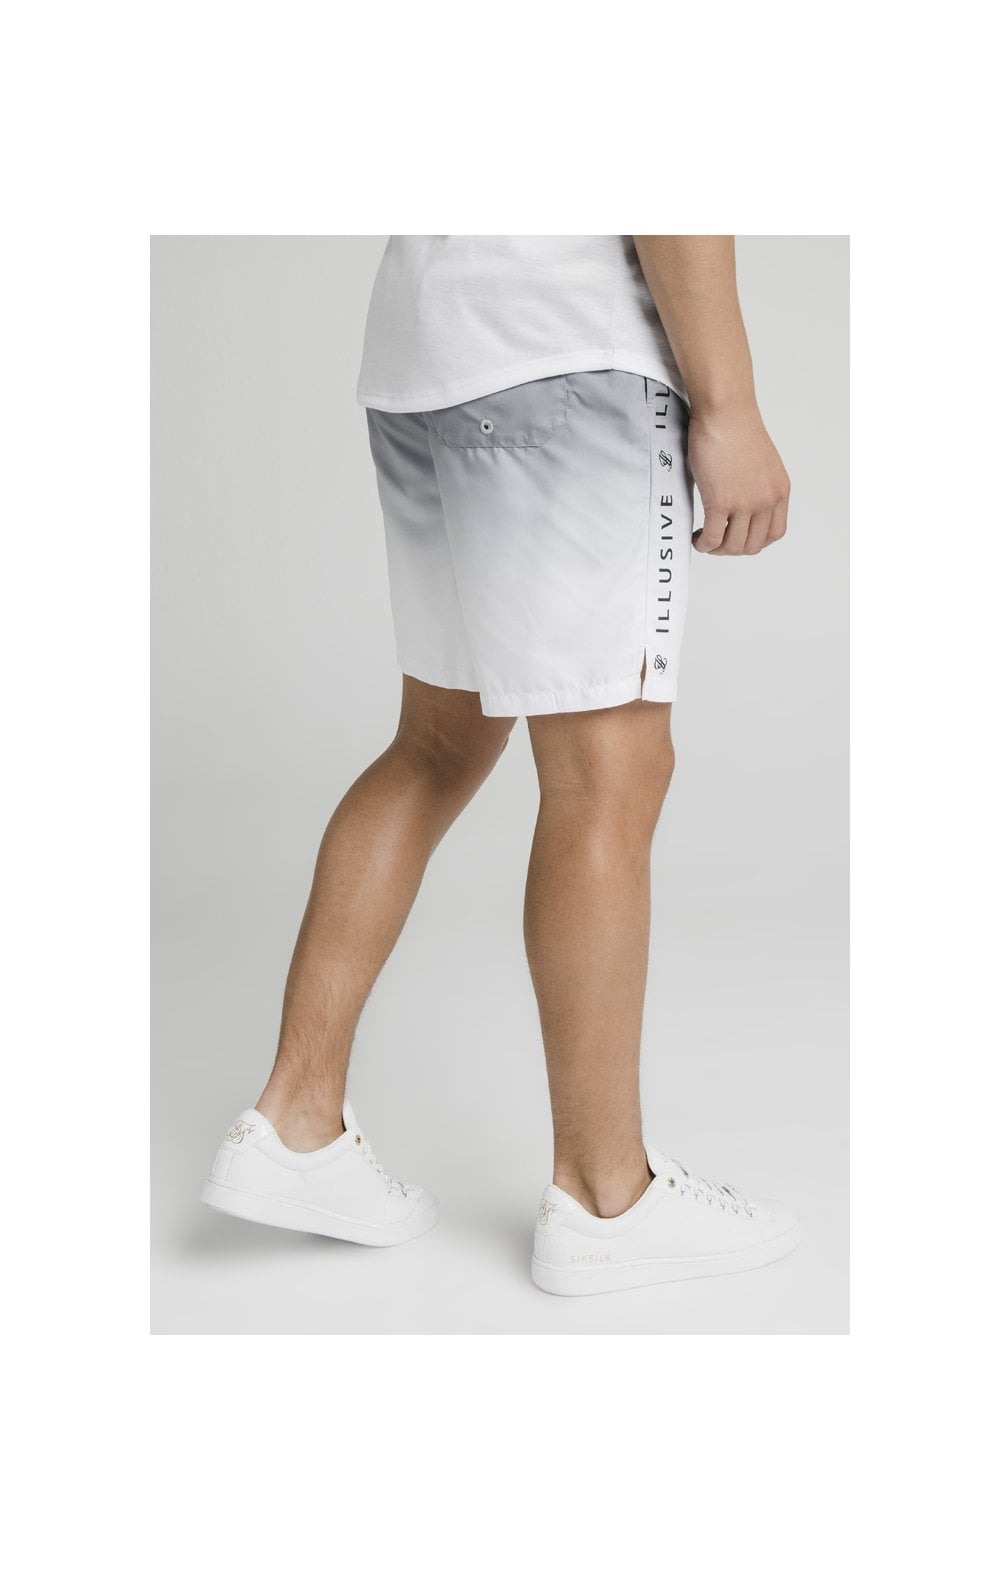 Load image into Gallery viewer, Illusive London Fade Swim Shorts - Grey & White (4)